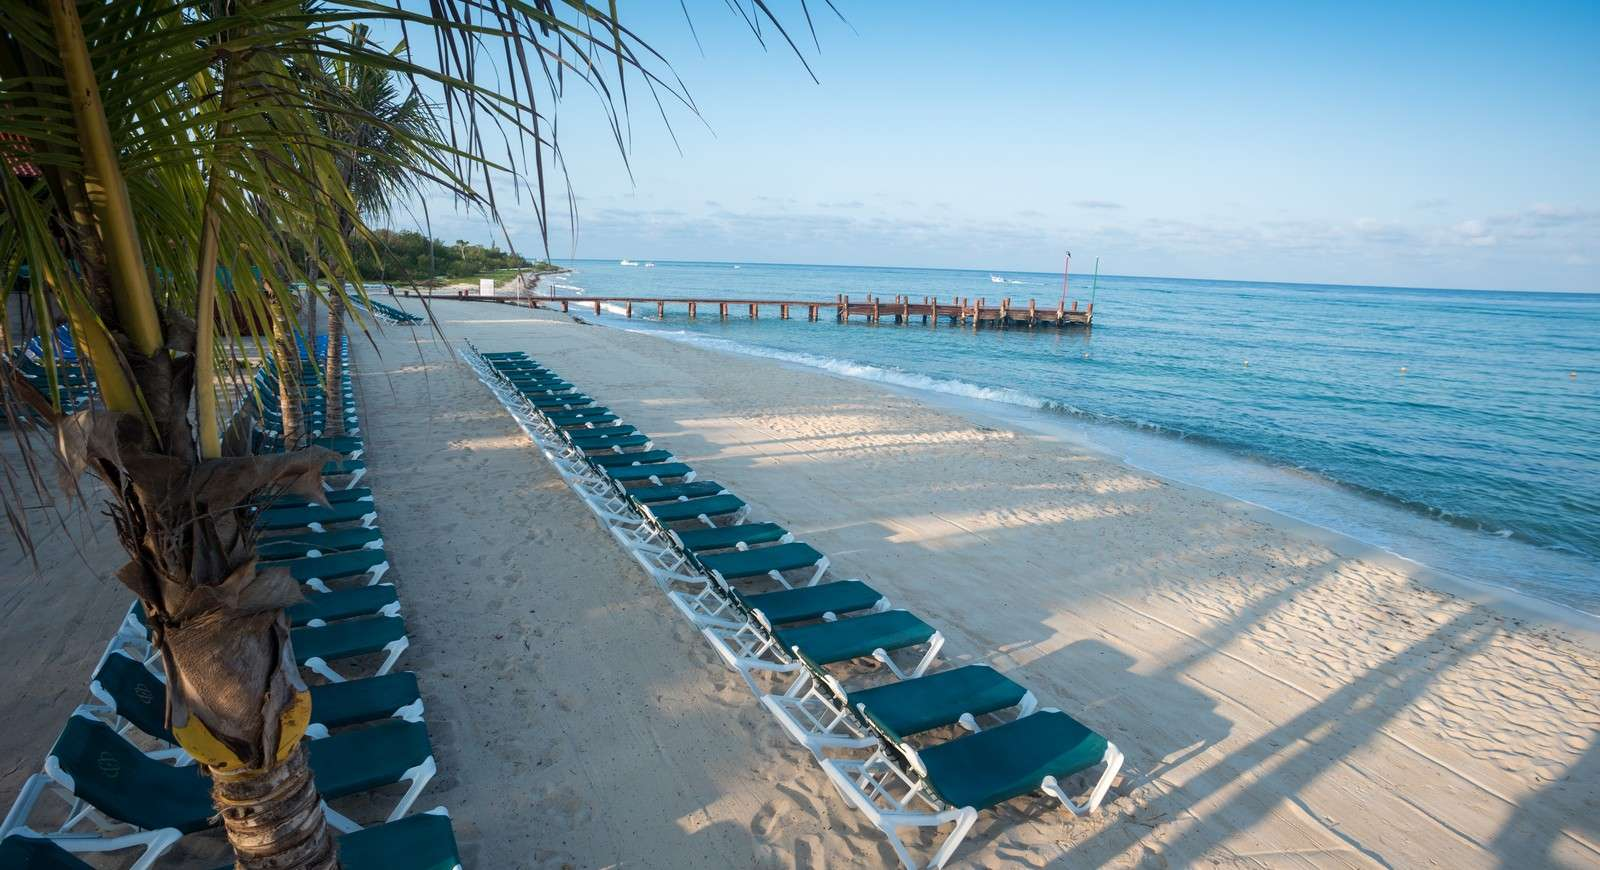 386-beach-12-hotel-occidental-grand-cozumel-resort_tcm21-115363_w1600_h870_n